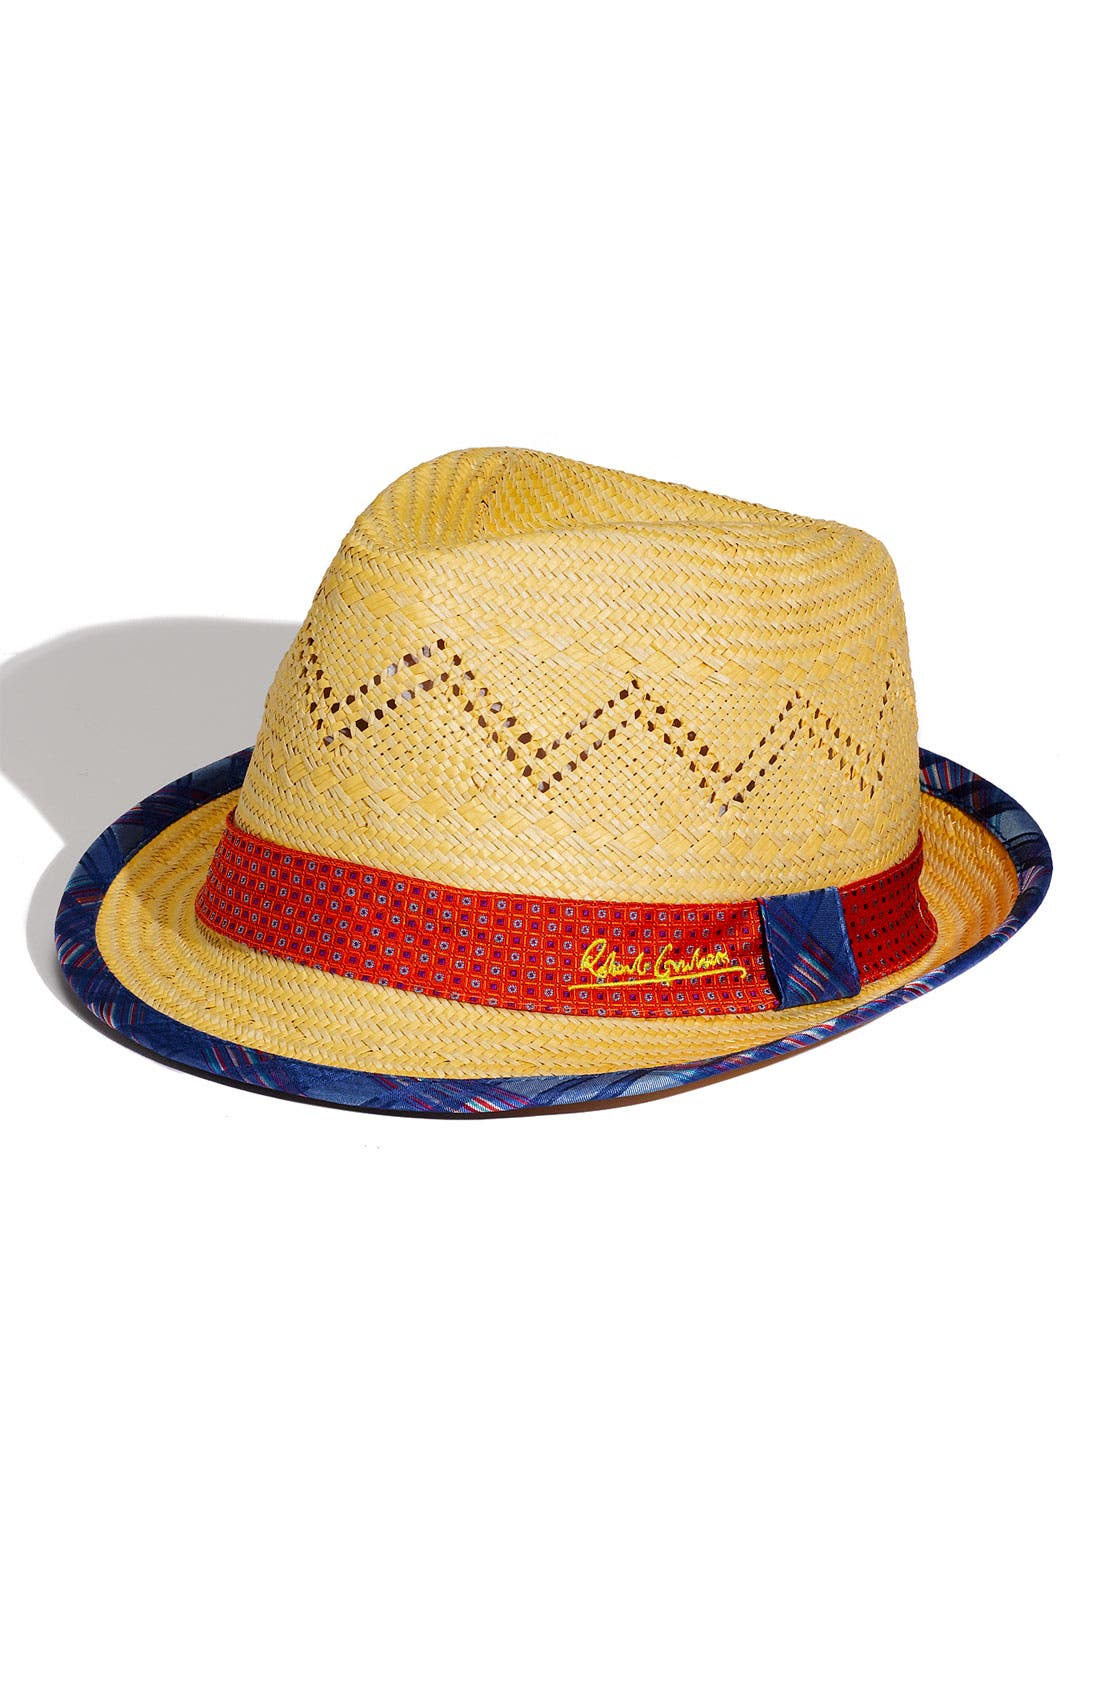 Alternate Image 1 Selected - Robert Graham 'Bruno' Straw Fedora